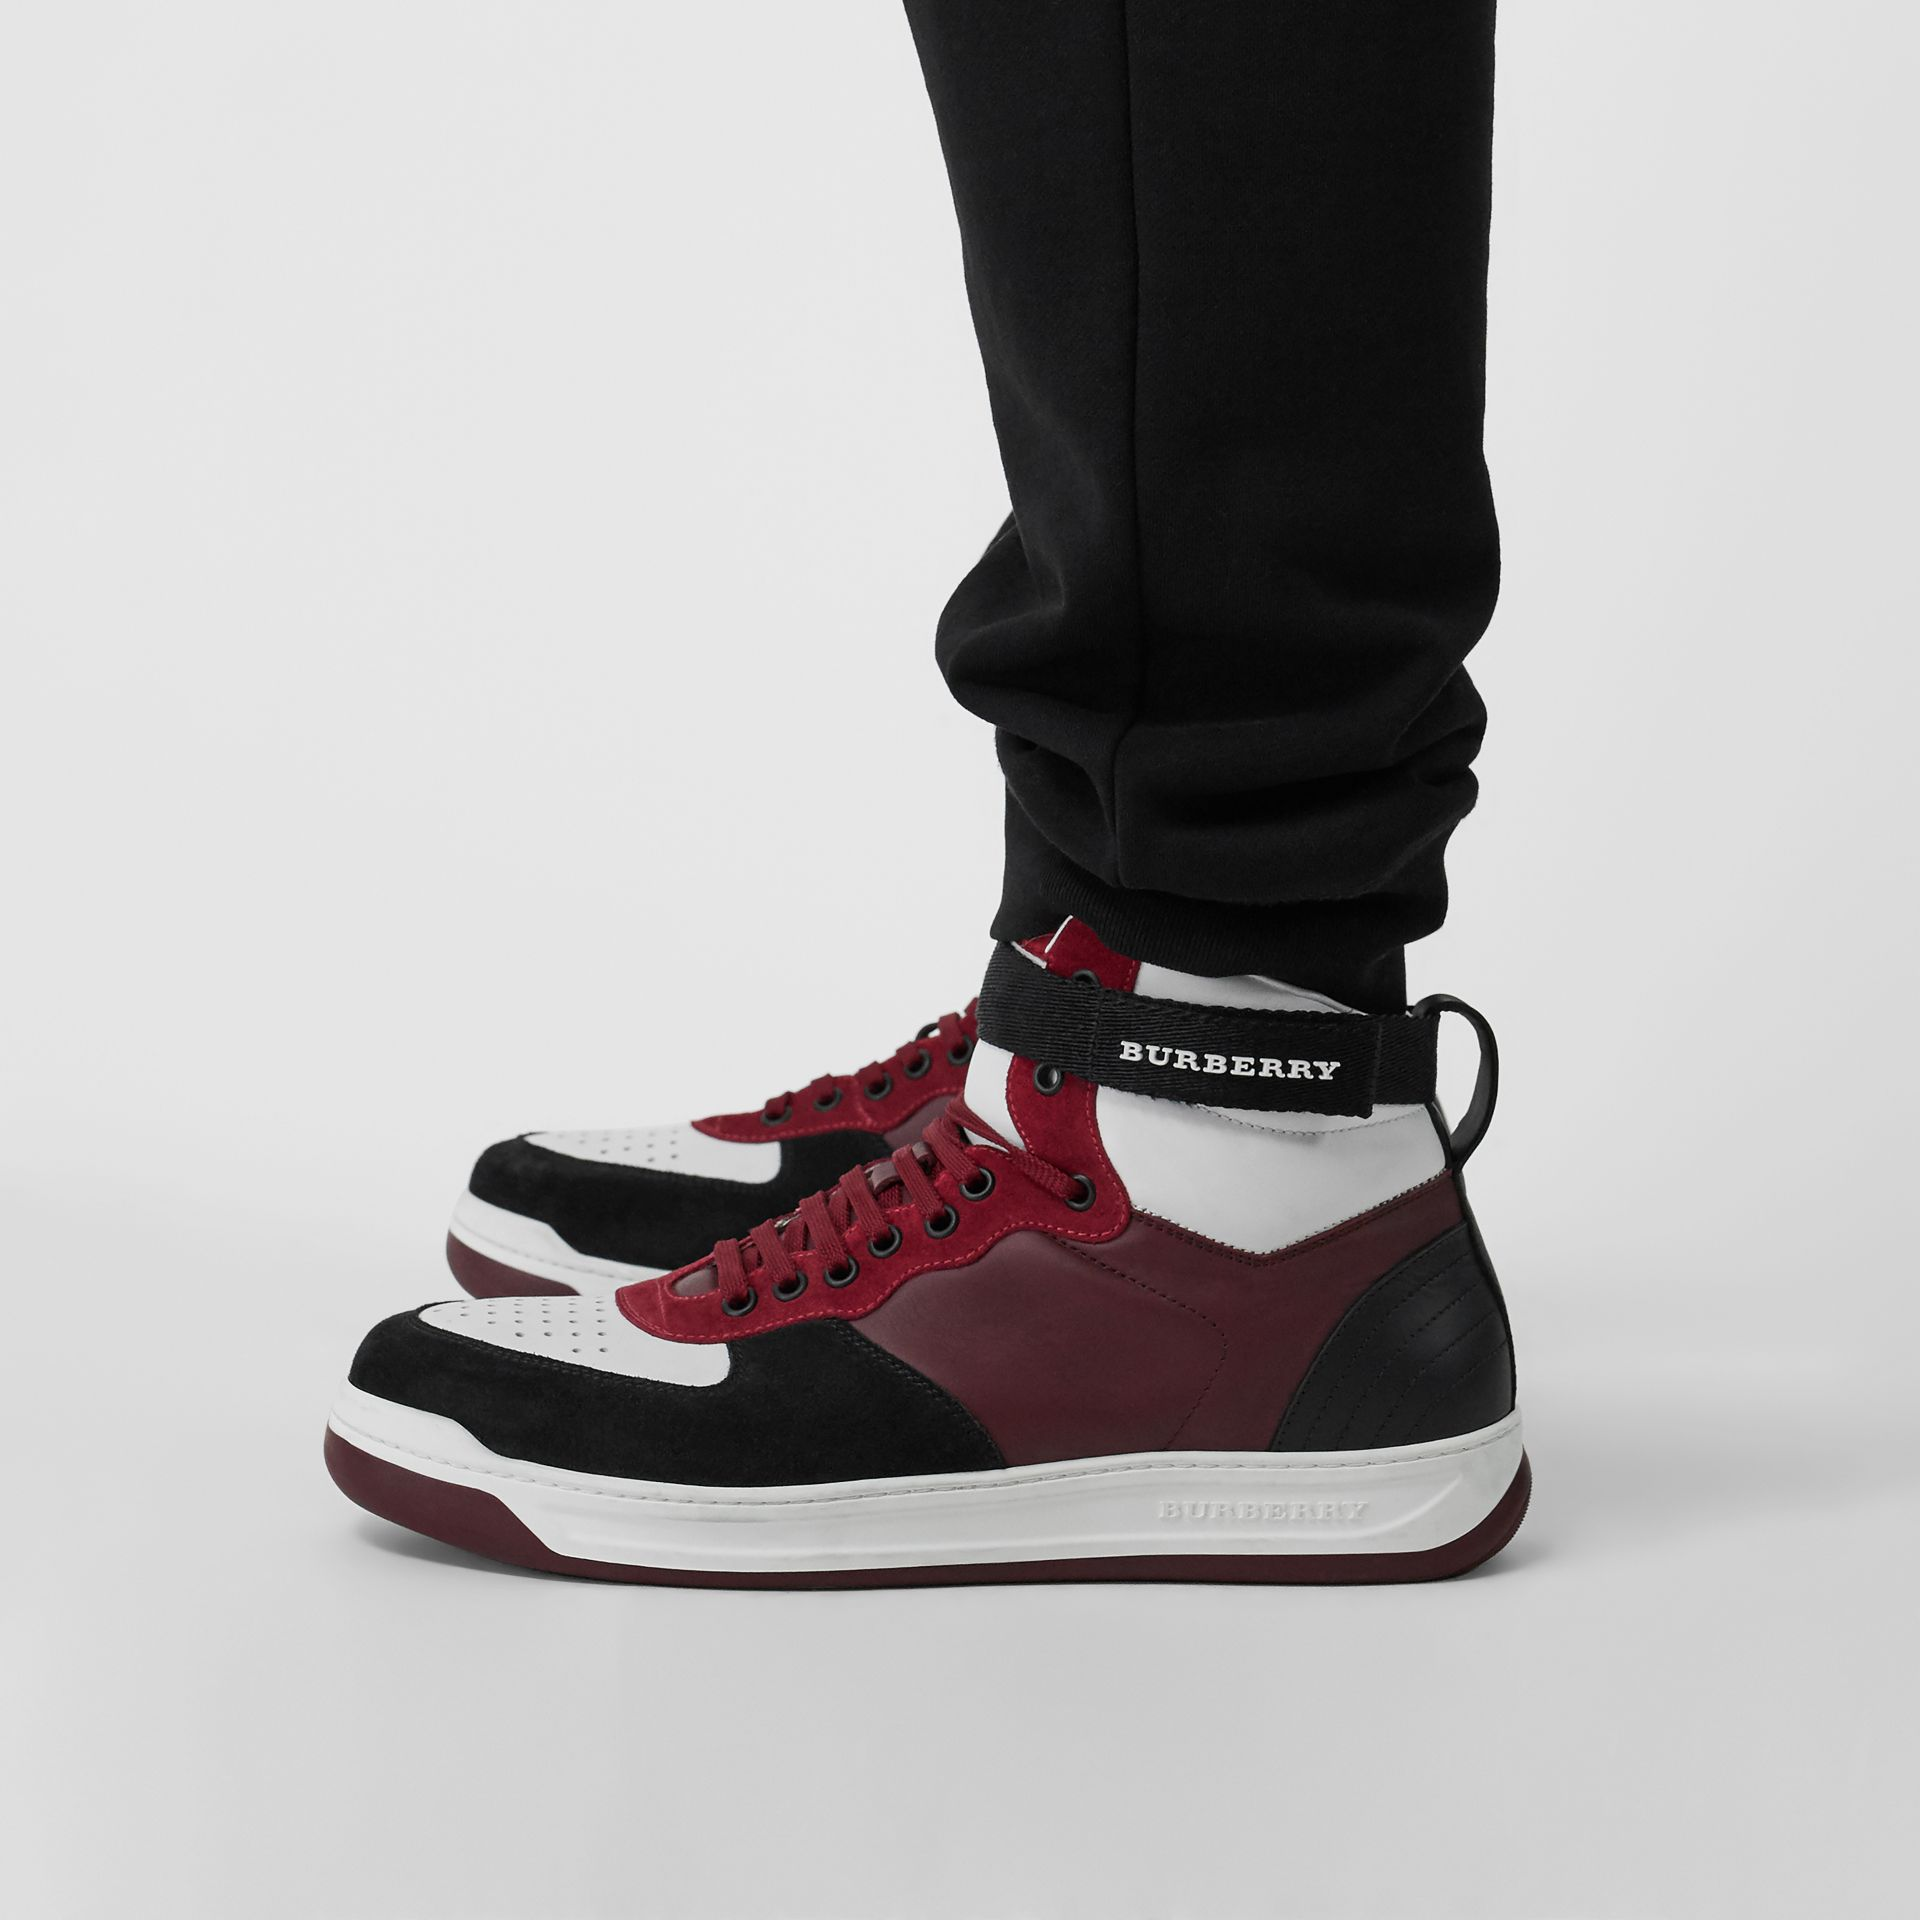 Leather and Suede High-top Sneakers in Burgundy Red - Men | Burberry - gallery image 2